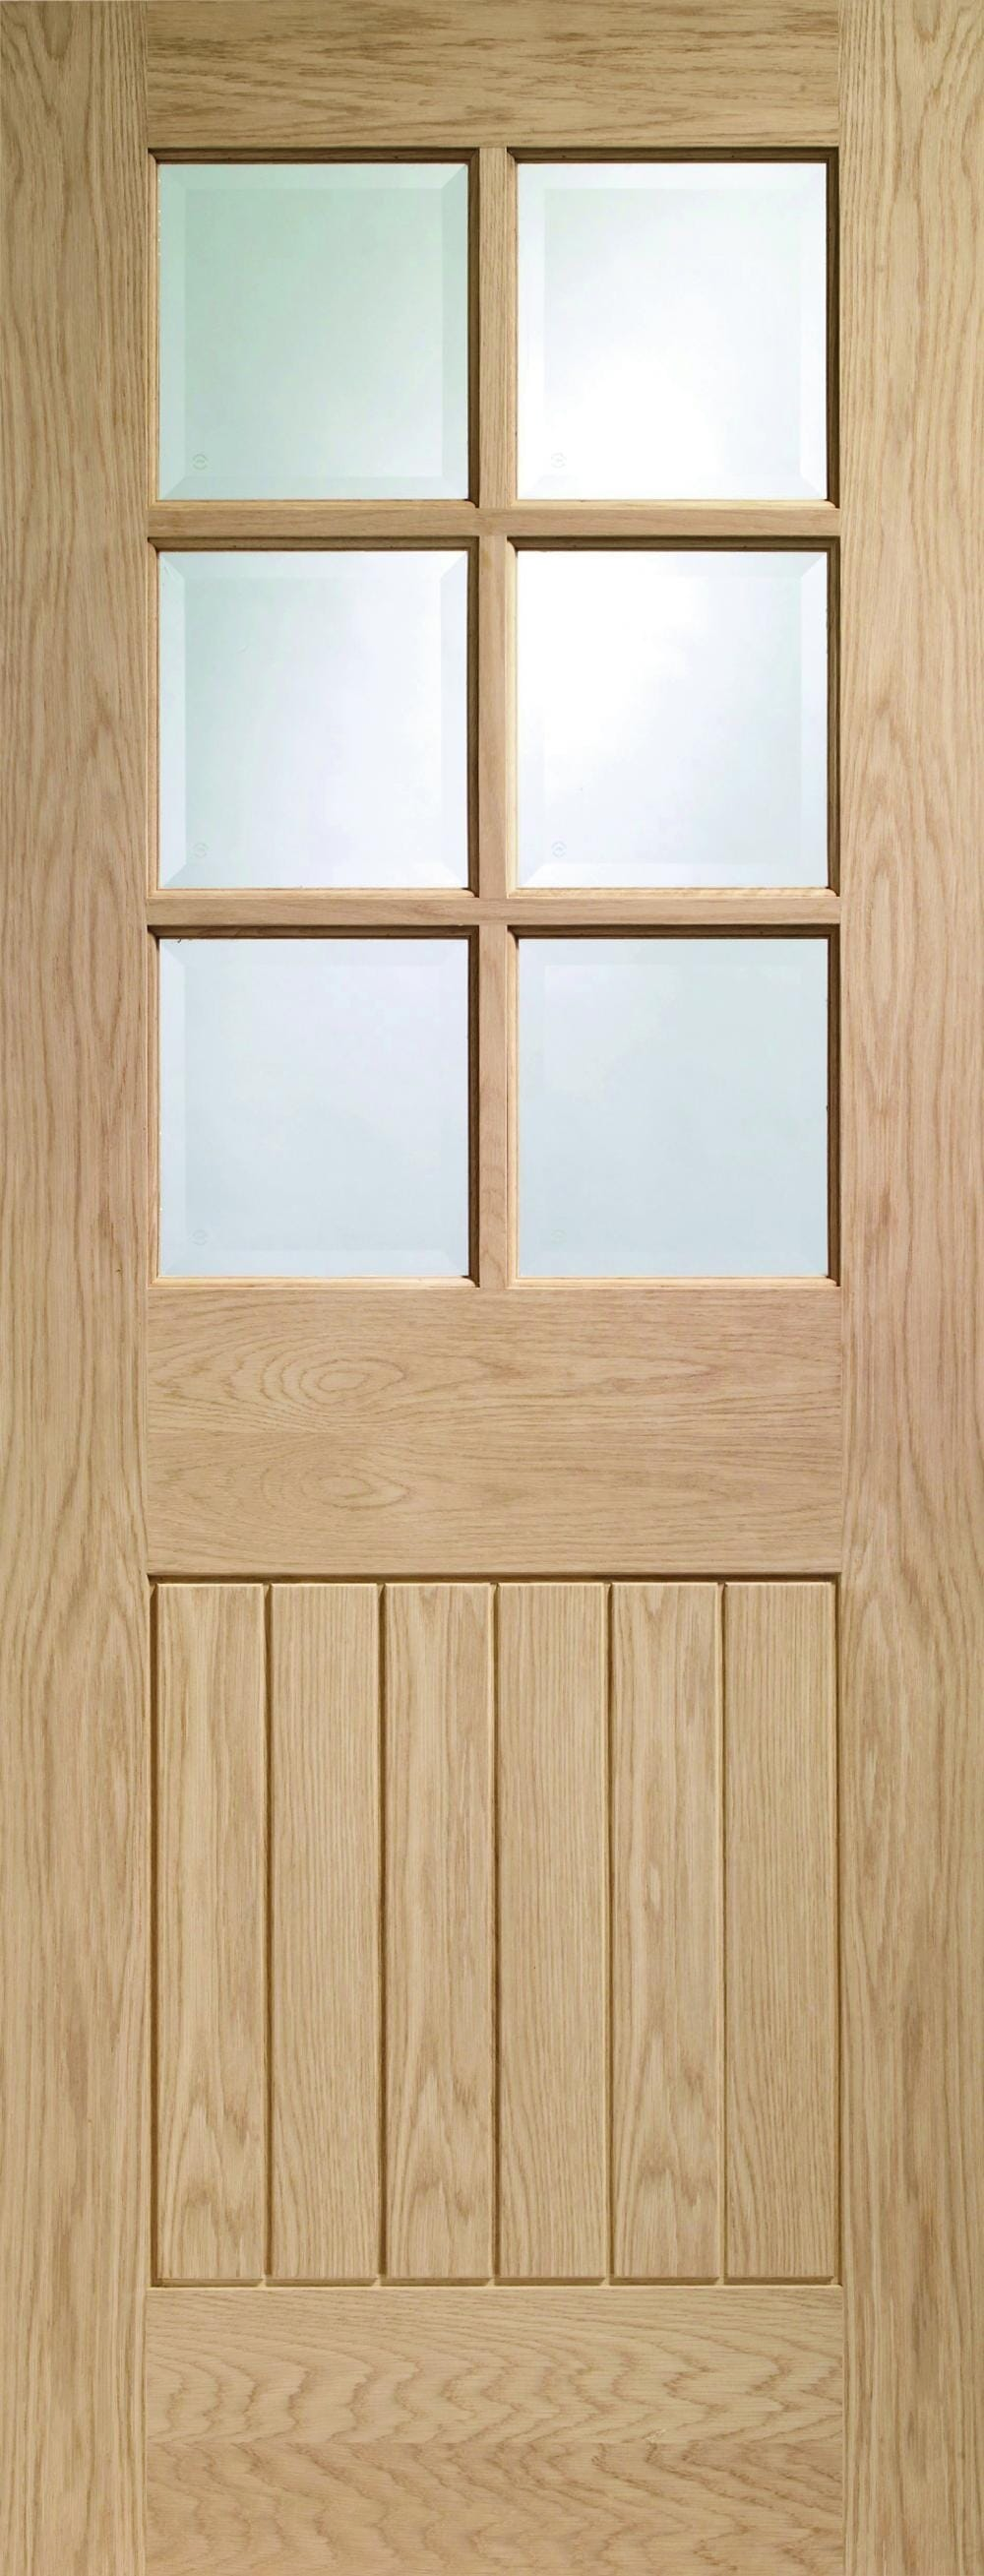 Suffolk Oak - Prefinished Clear Glass Image